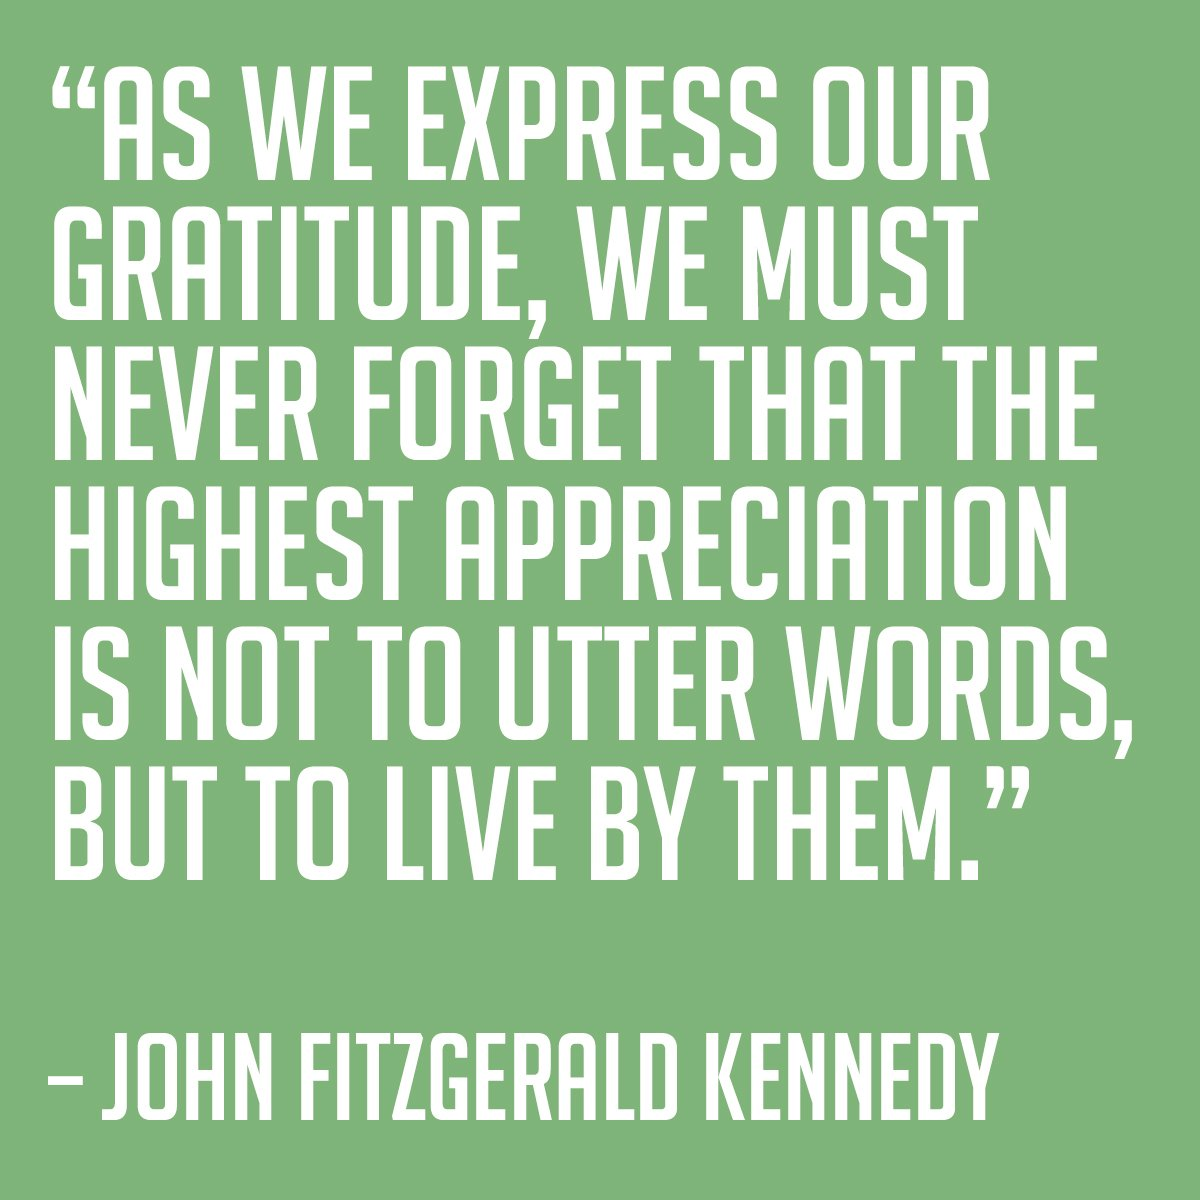 John F Kennedy Gratitude Quote: Thanksgiving Quotes John Kennedy. QuotesGram